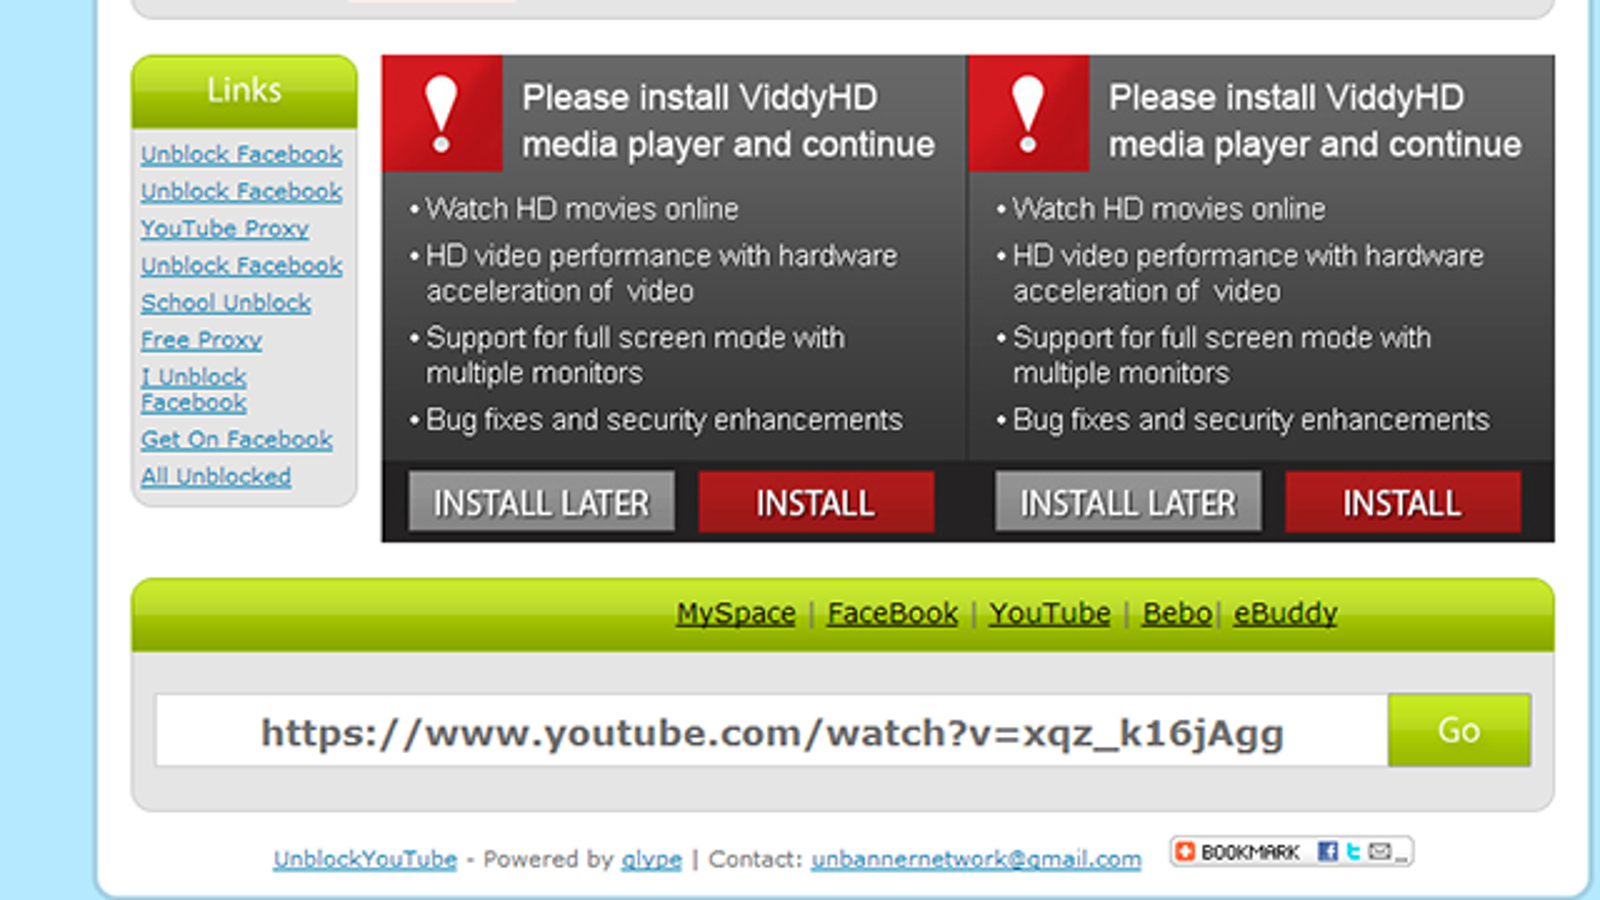 Unblock YouTube Bypasses Region Filtering on YouTube Videos